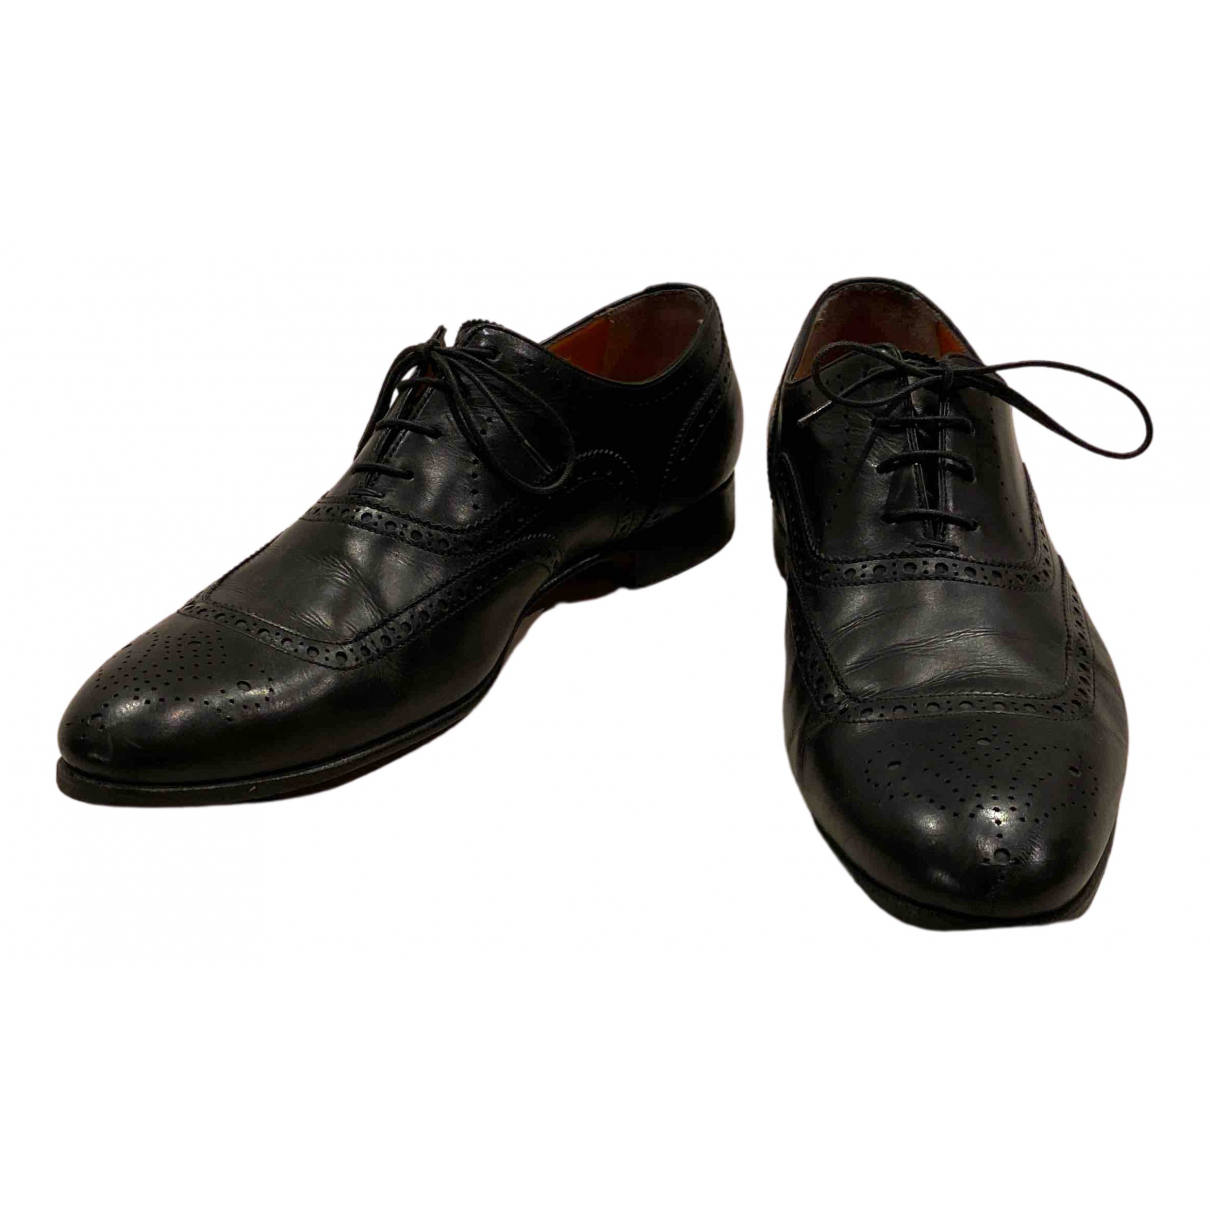 Santoni N Black Leather Lace ups for Men 8.5 UK